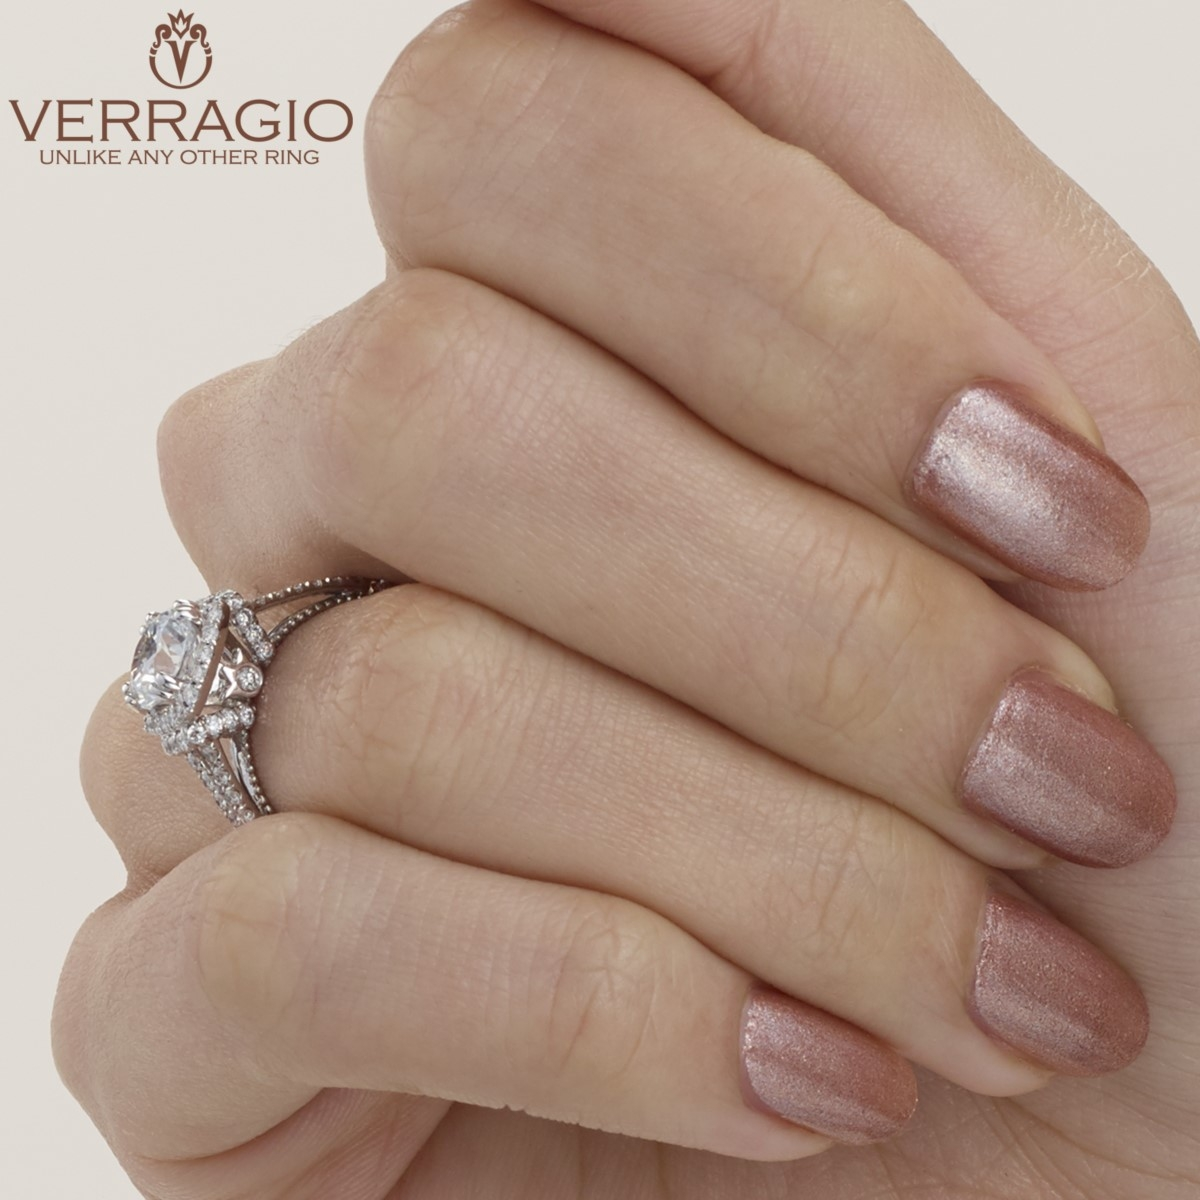 Verragio Parisian-DL117CU 14 Karat Engagement Ring Alternative View 7